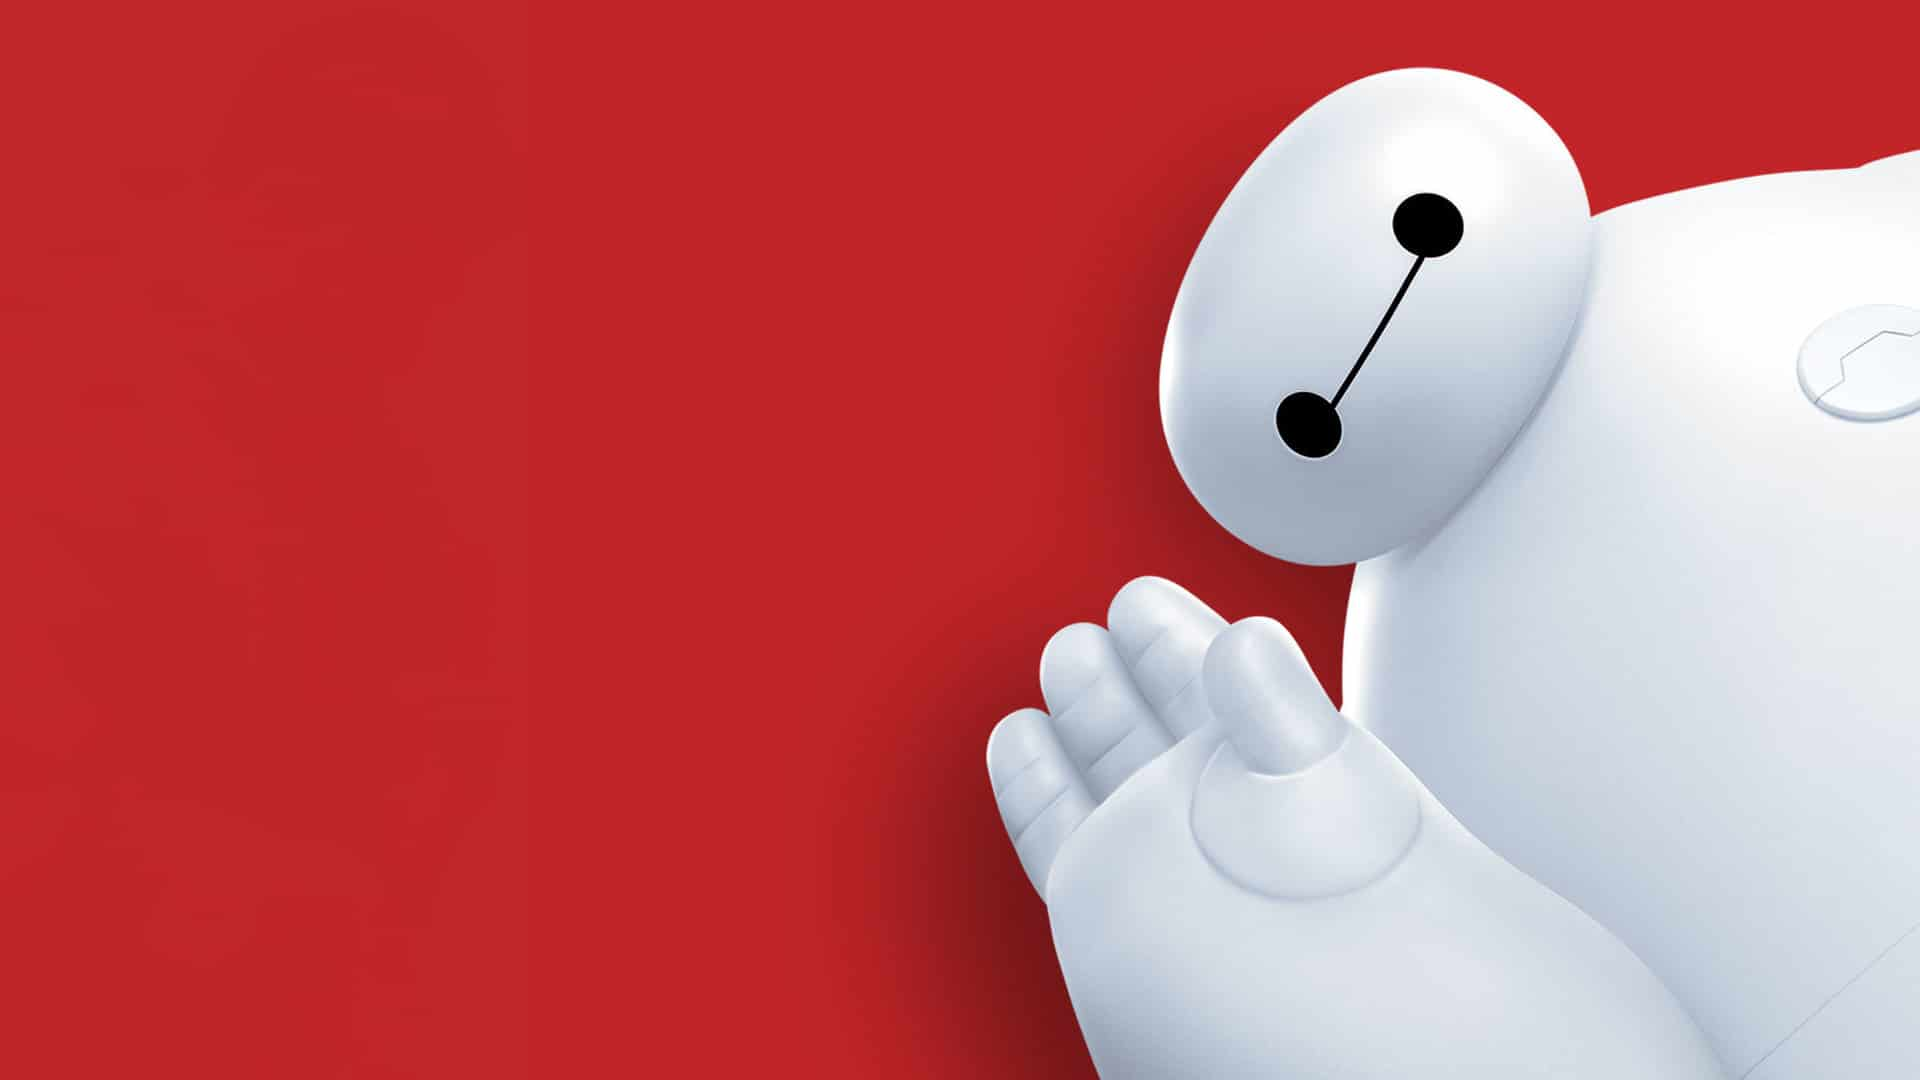 Avengers Animated Wallpaper Big Hero 6 Animated Sequel Series Coming To Disney Xd